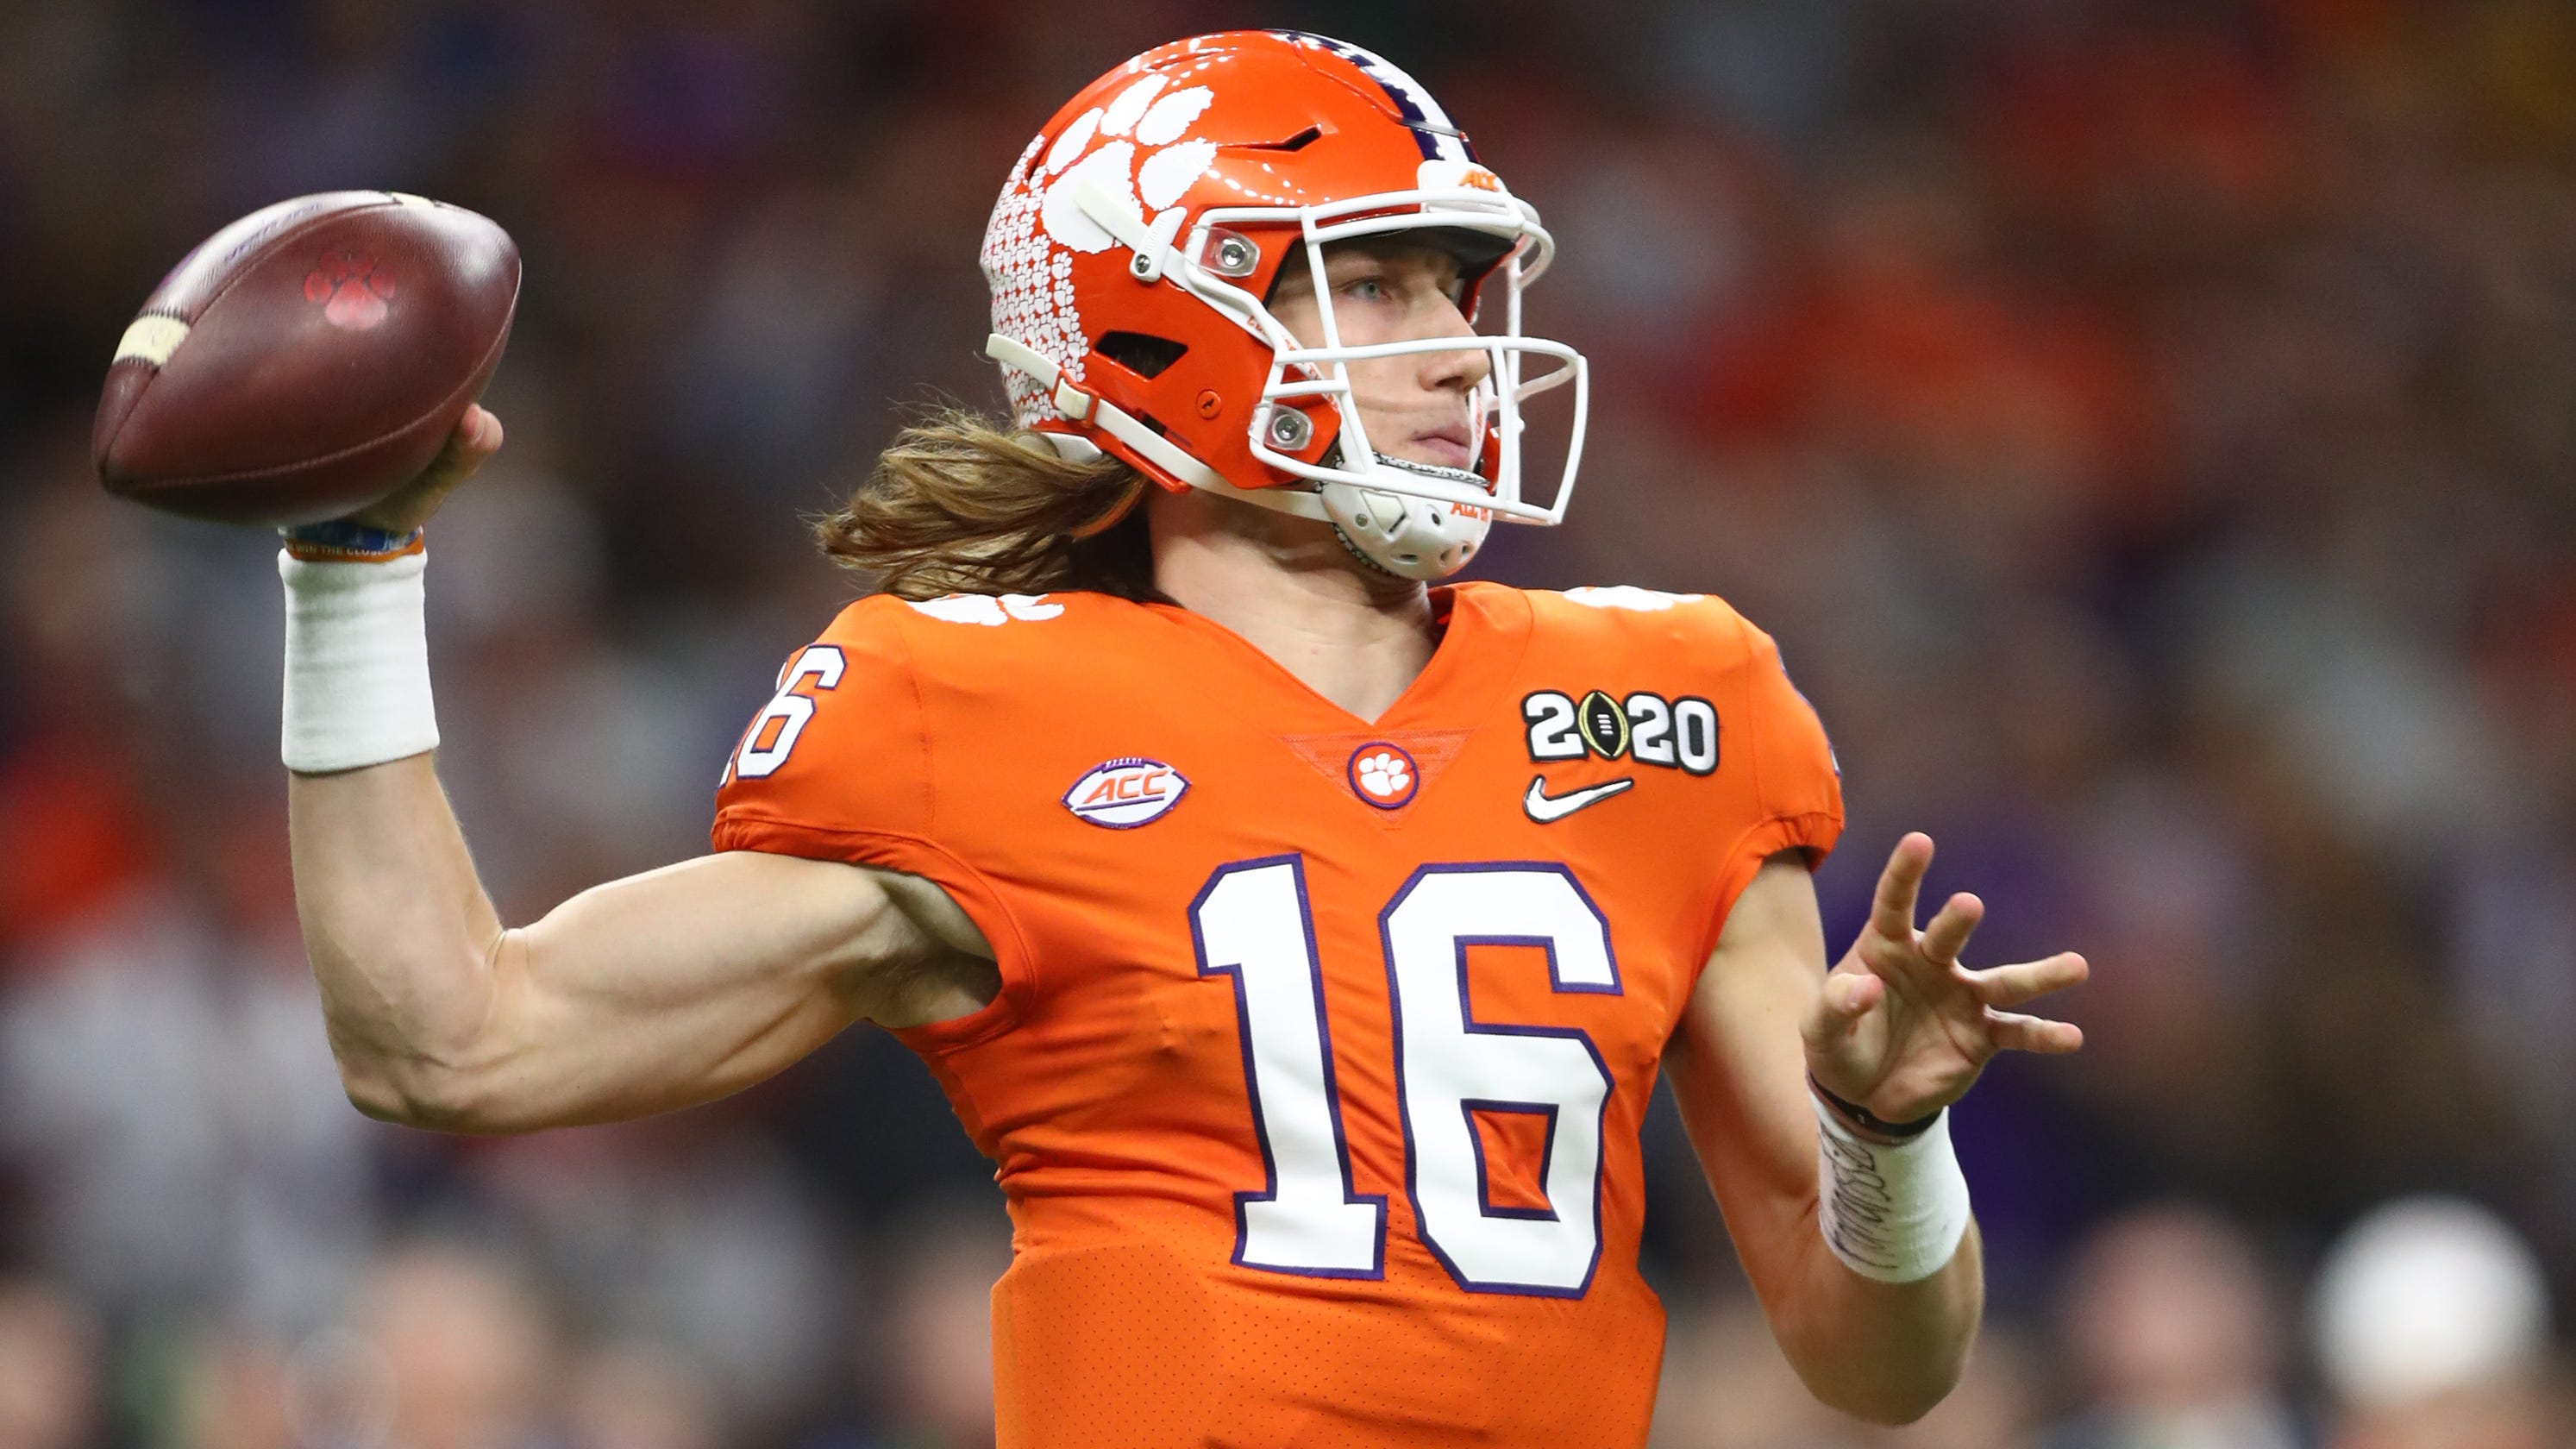 Donald Trump has talked to Clemson QB Trevor Lawrence about saving 2020 college football season